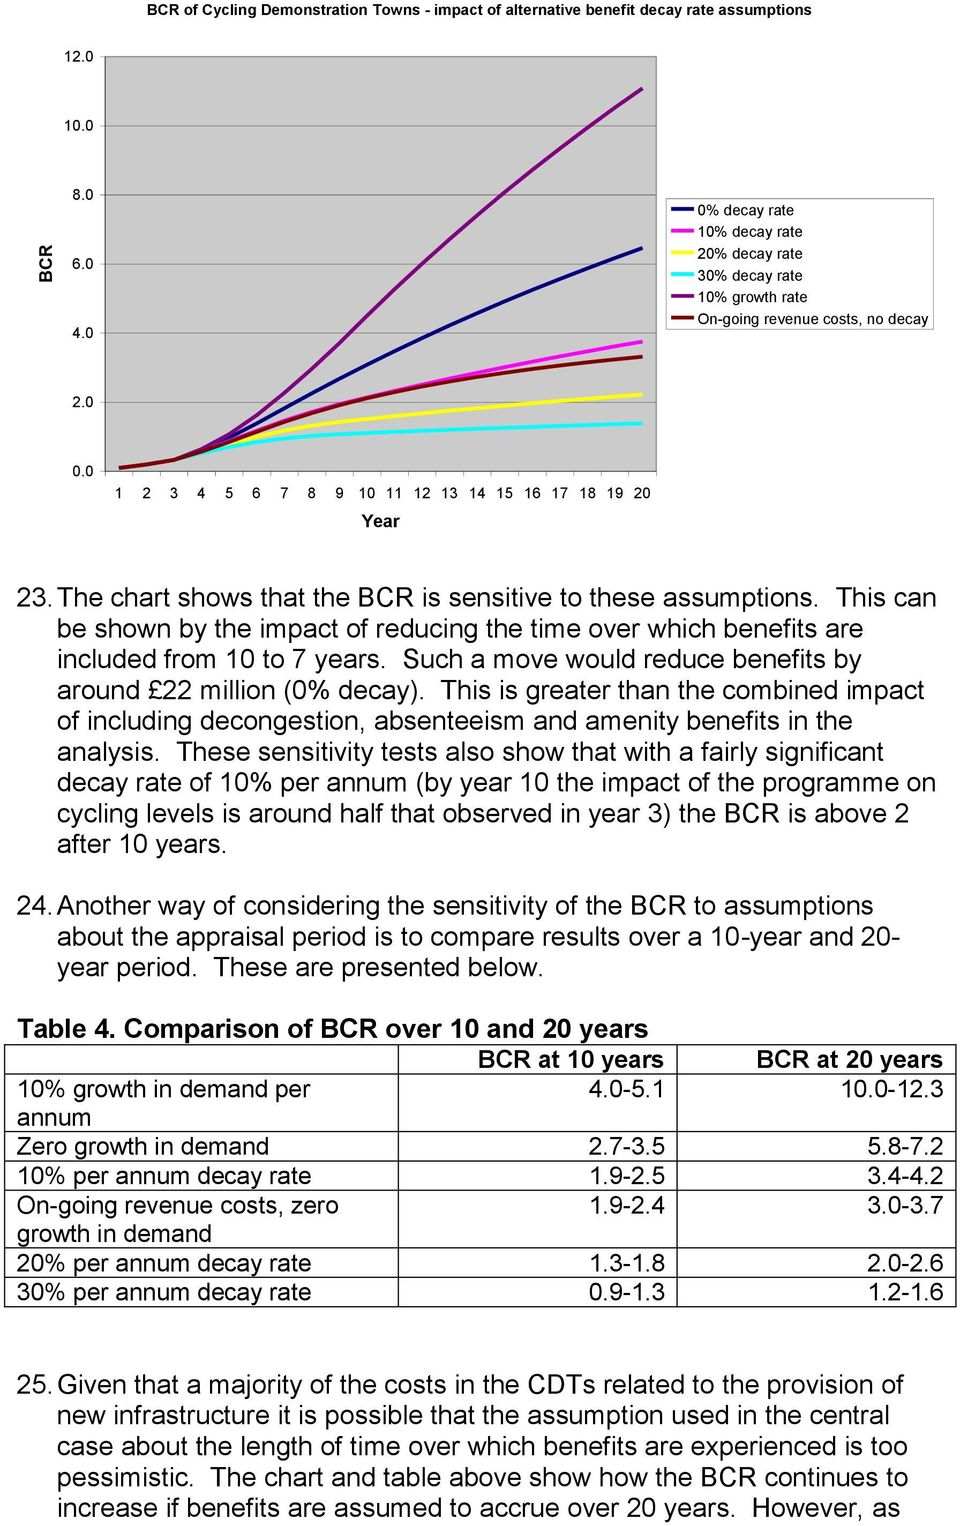 The chart shows that the BCR is sensitive to these assumptions. This can be shown by the impact of reducing the time over which benefits are included from 10 to 7 years.